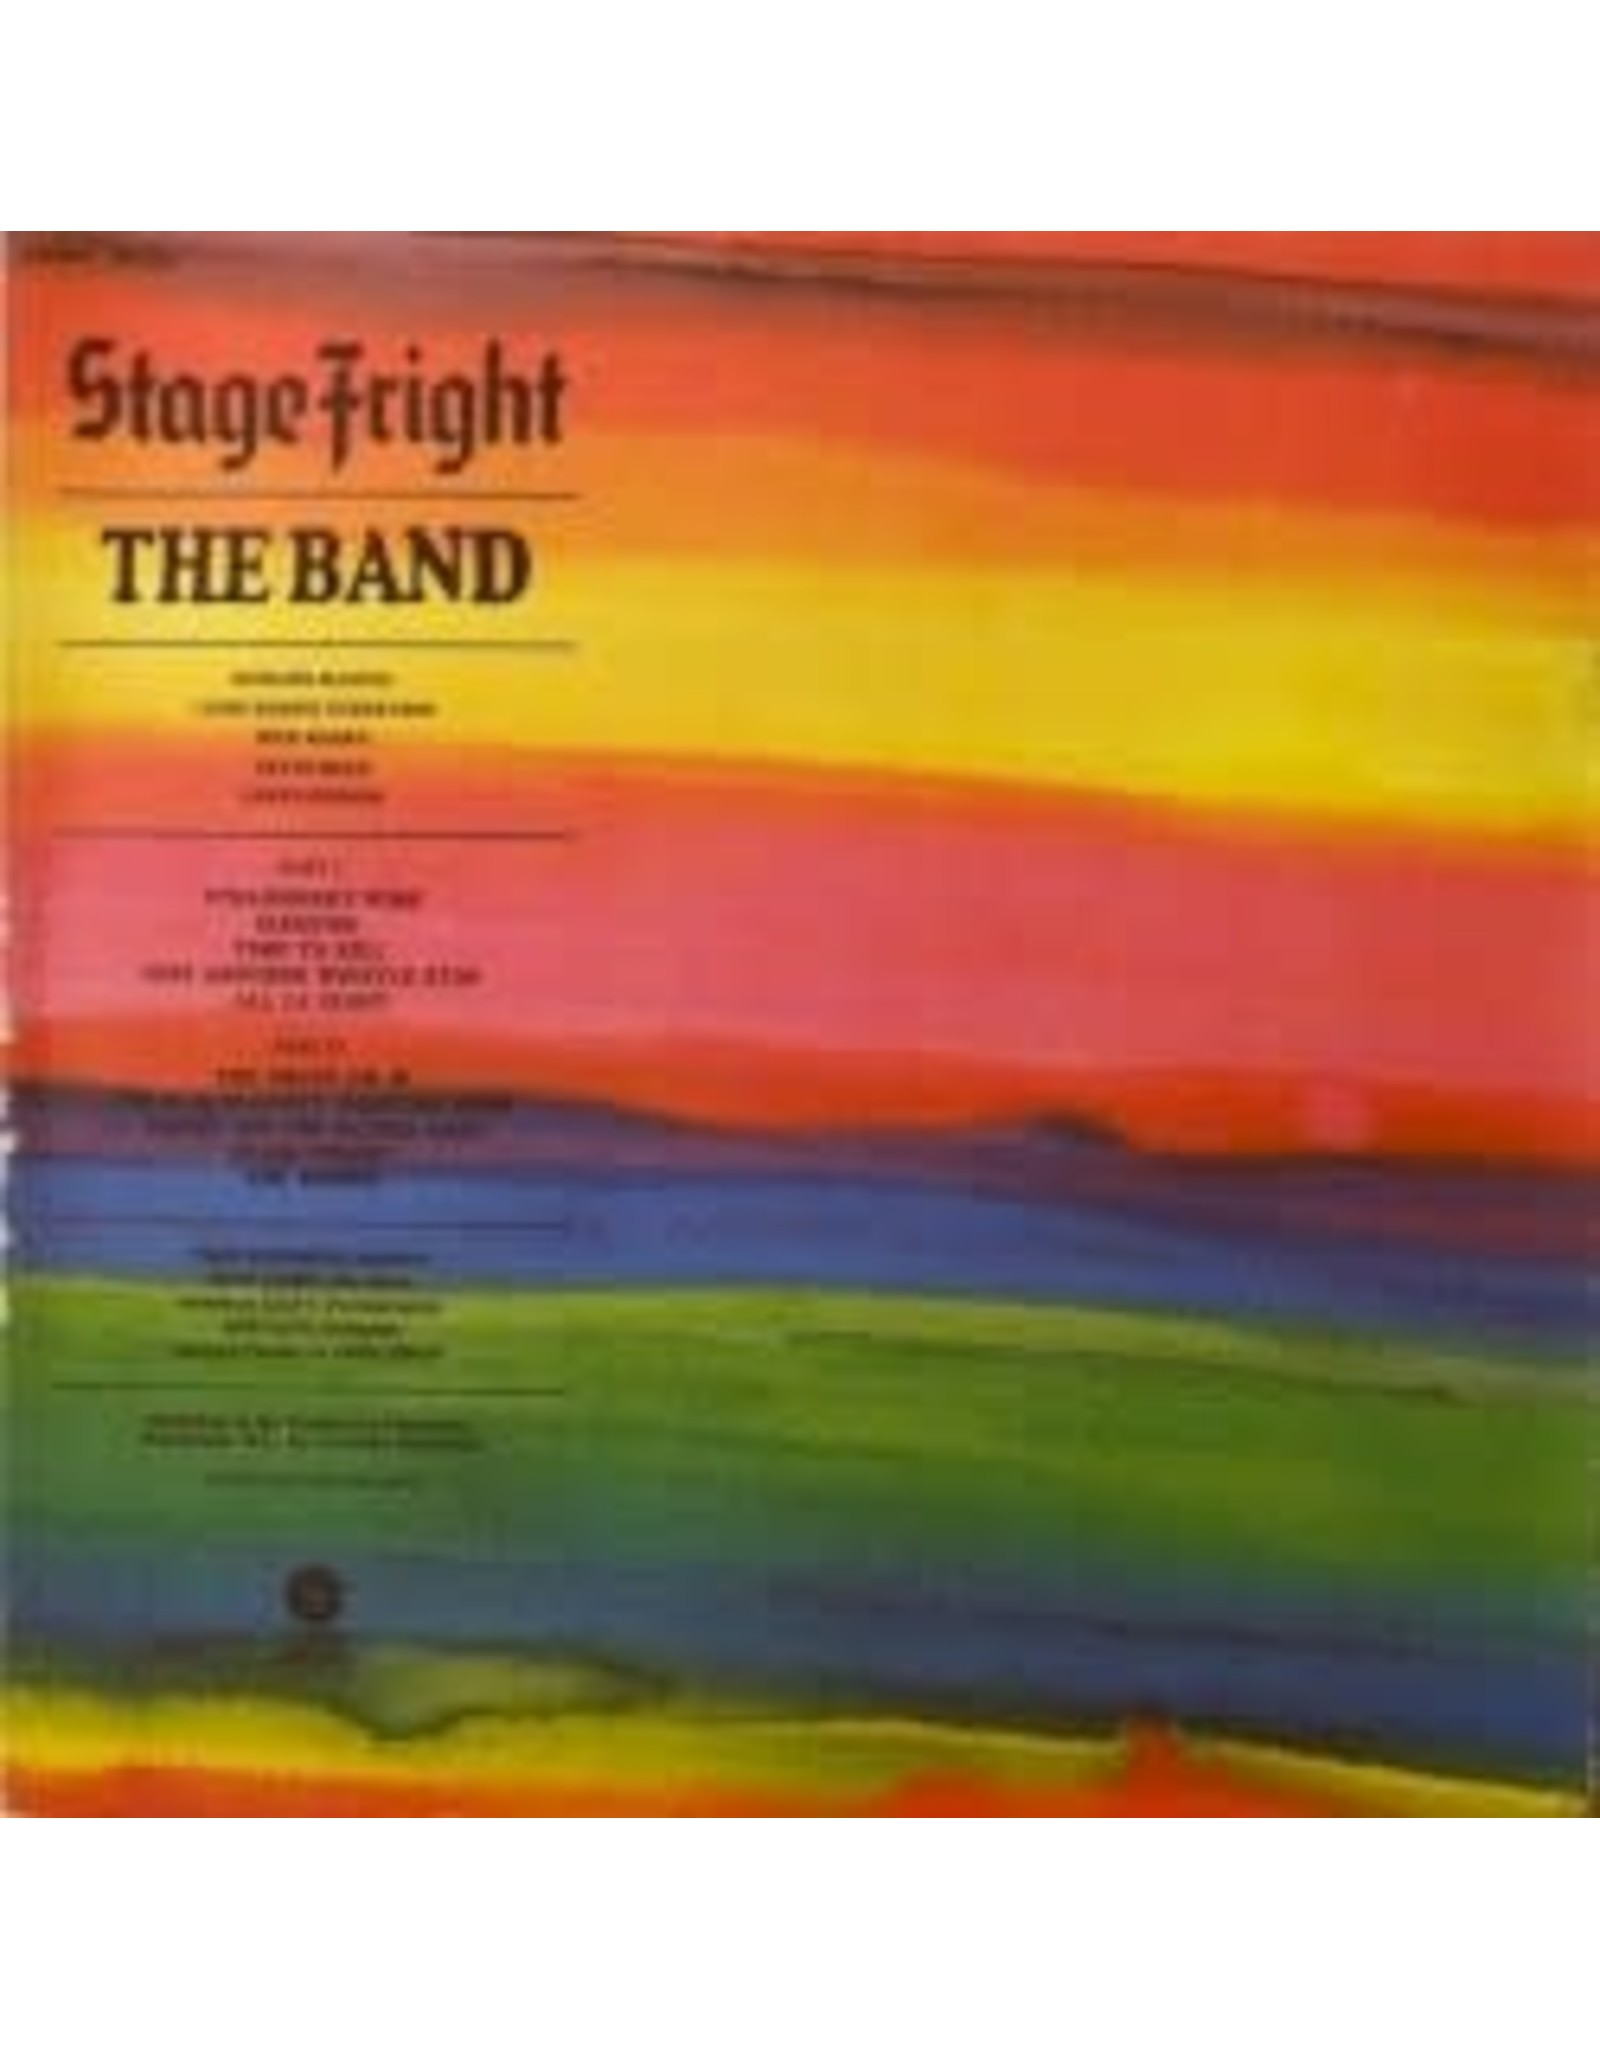 Band - Stage Fright LP